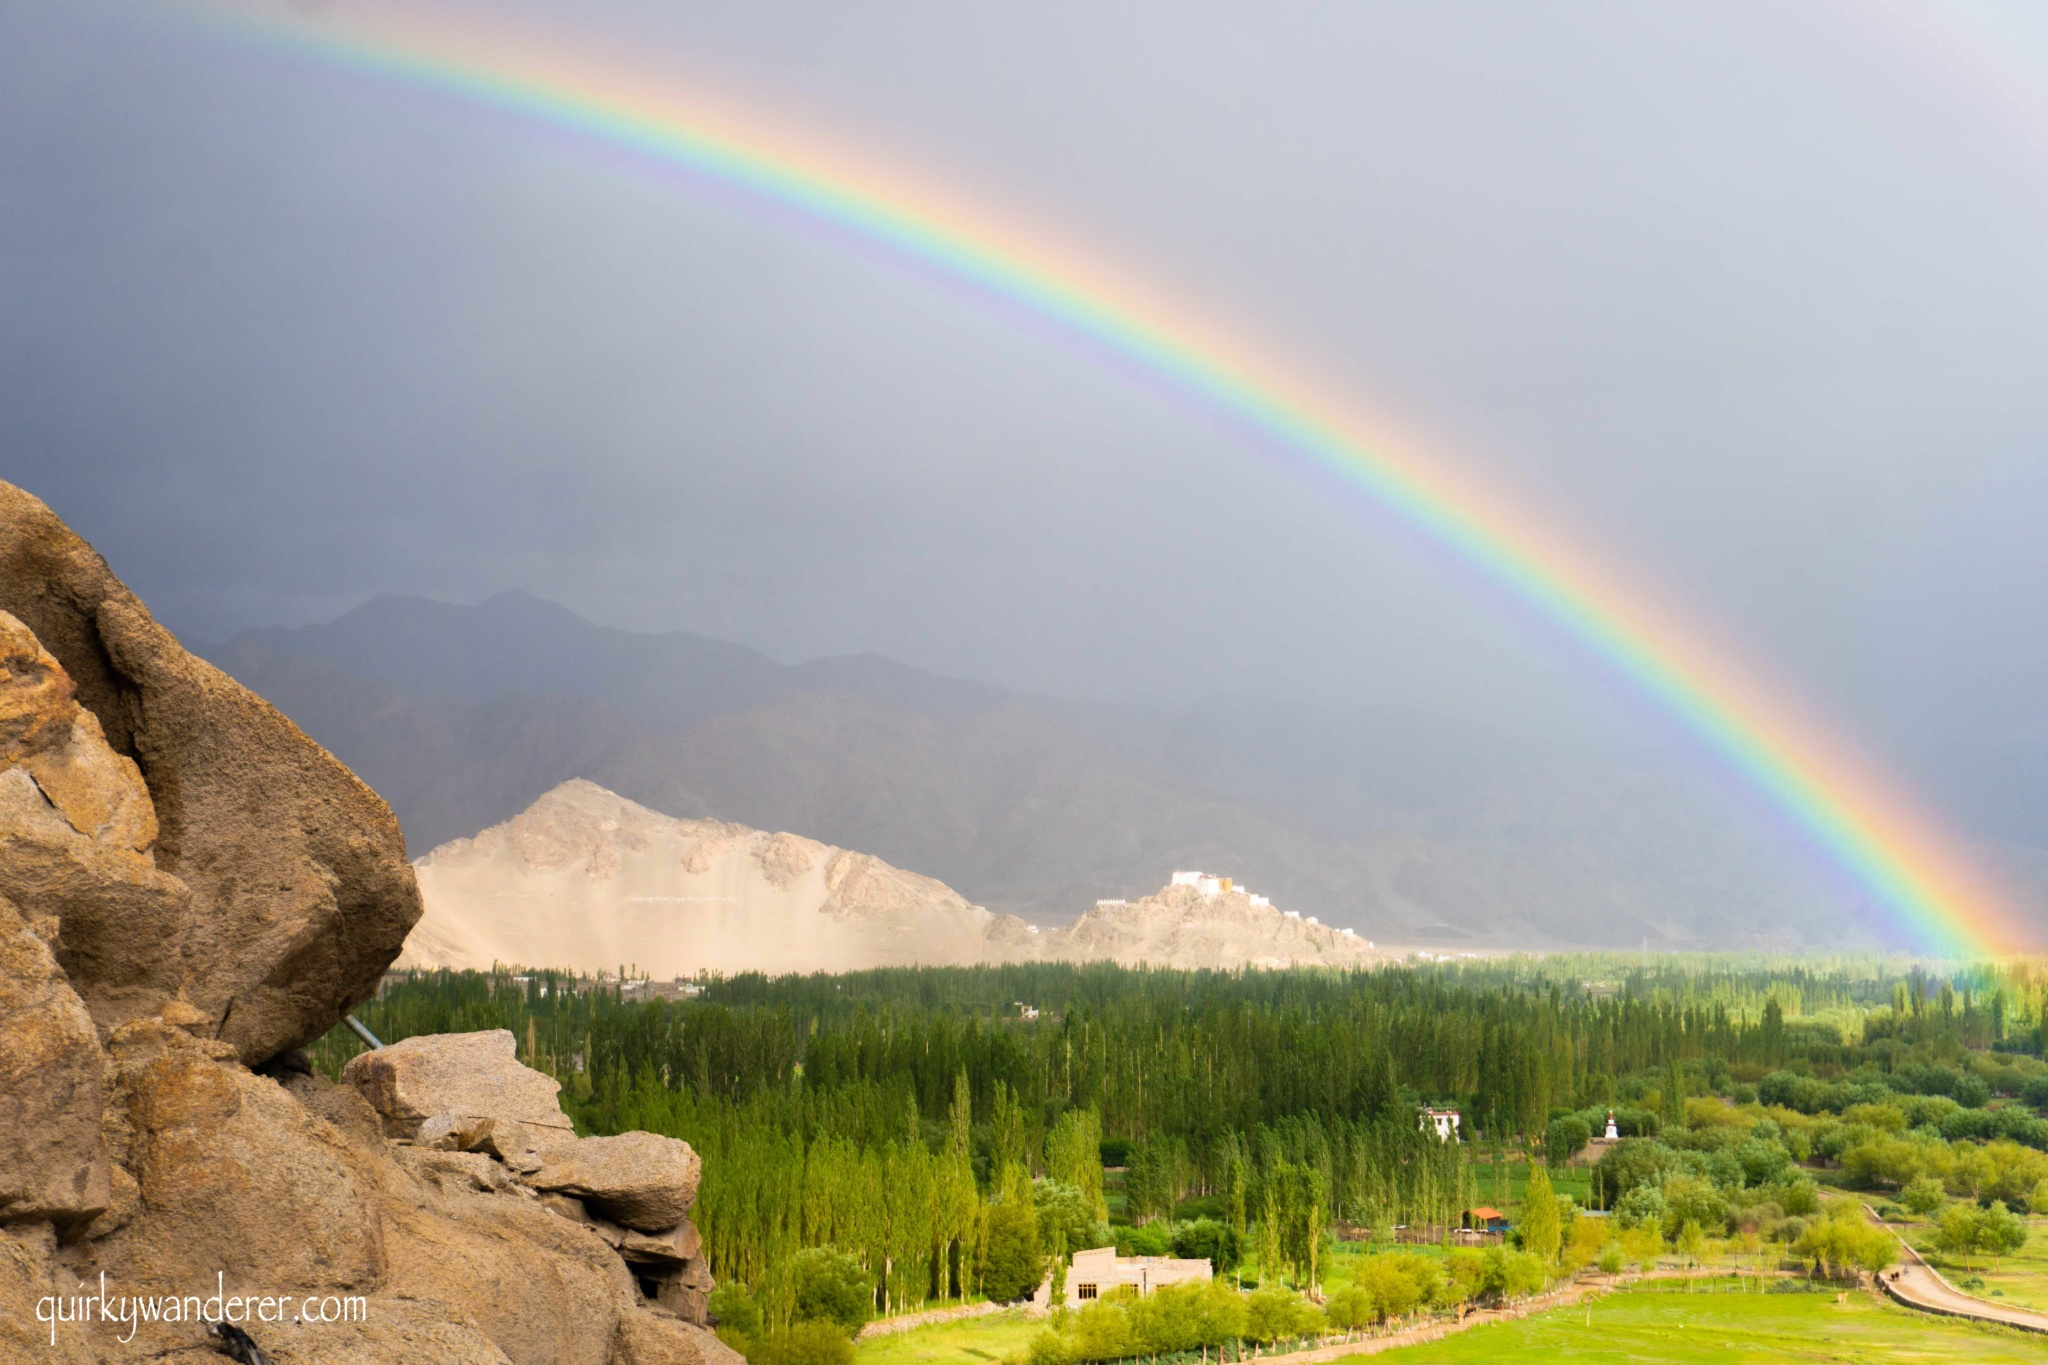 Rainbow in Leh, Ladakh.